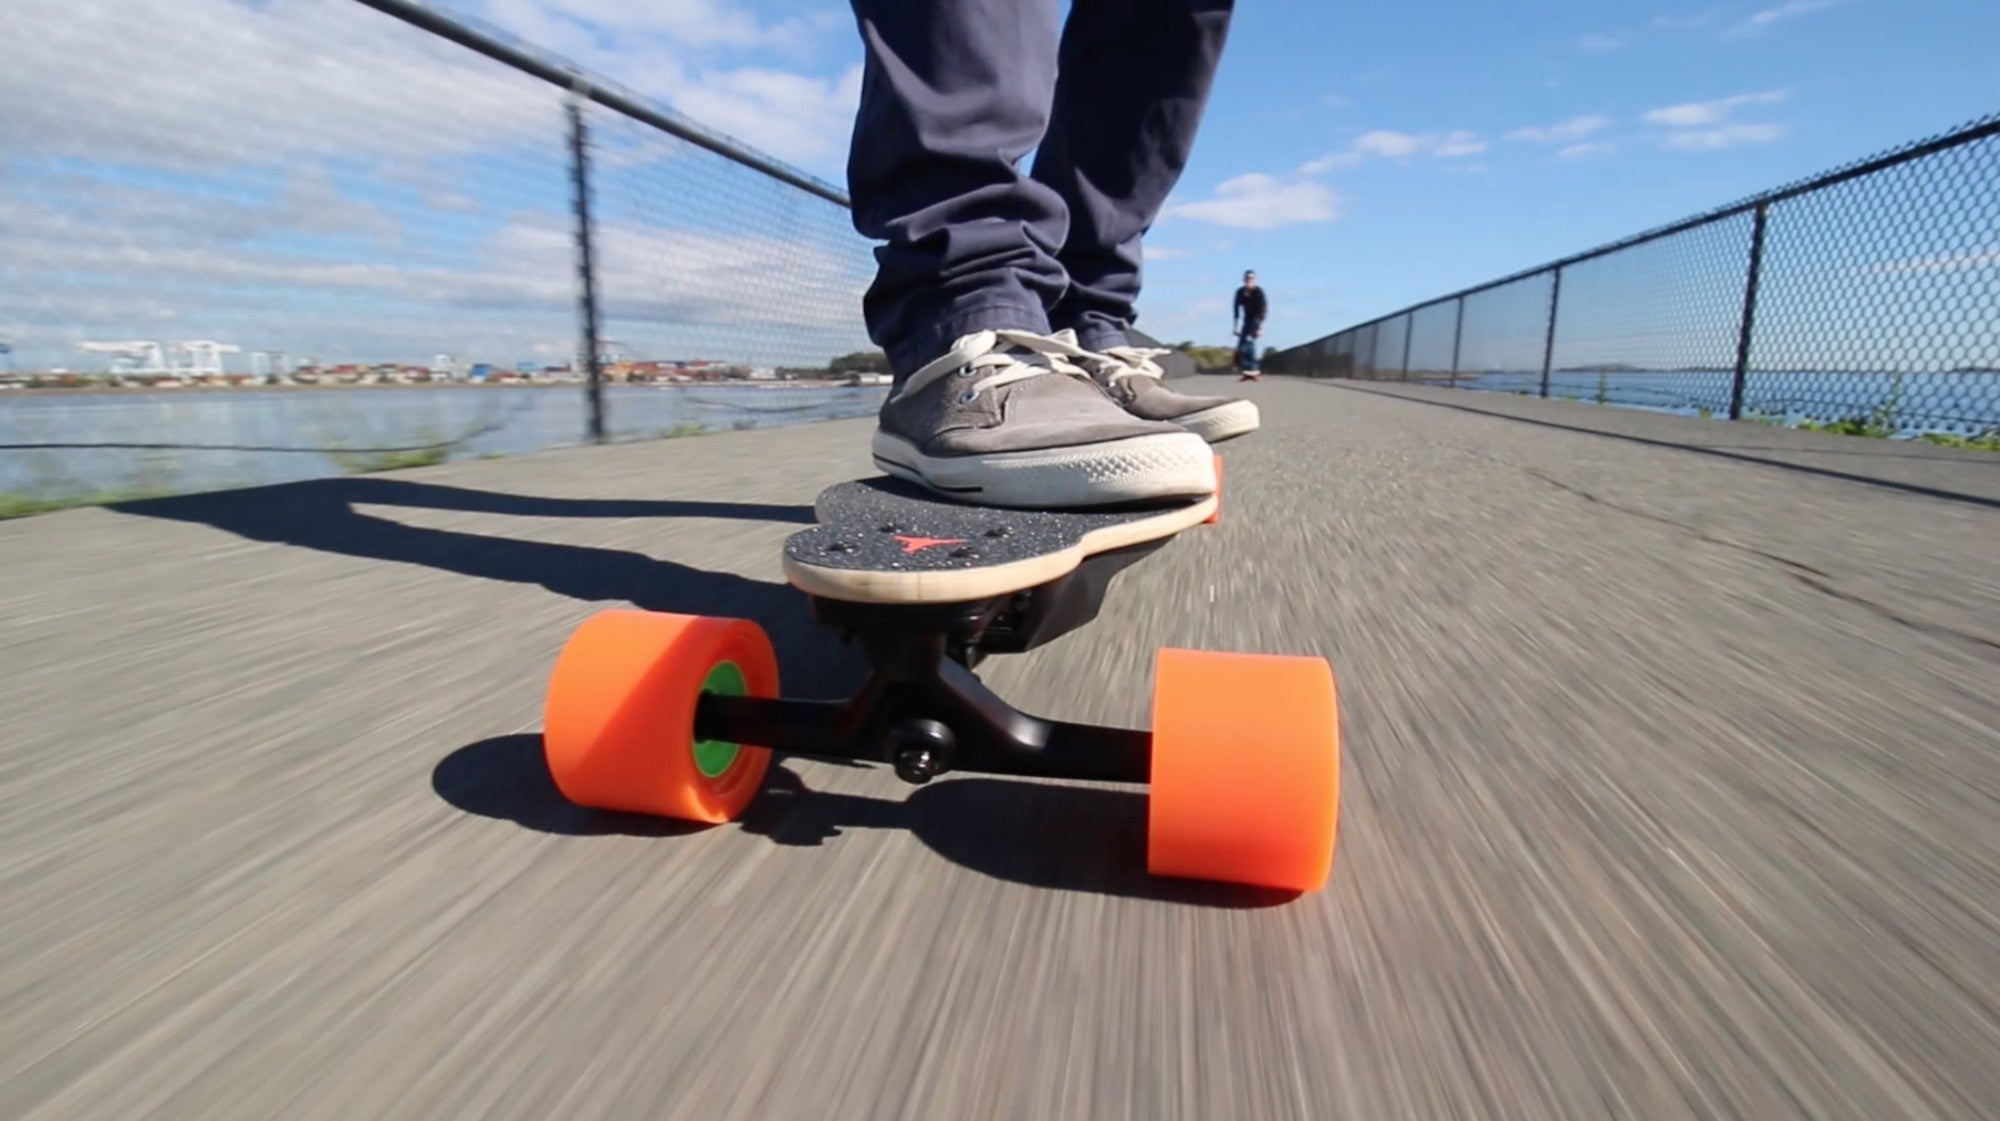 24 Best Tuesday Tips images   Skateboard, Skateboards, Tuesday